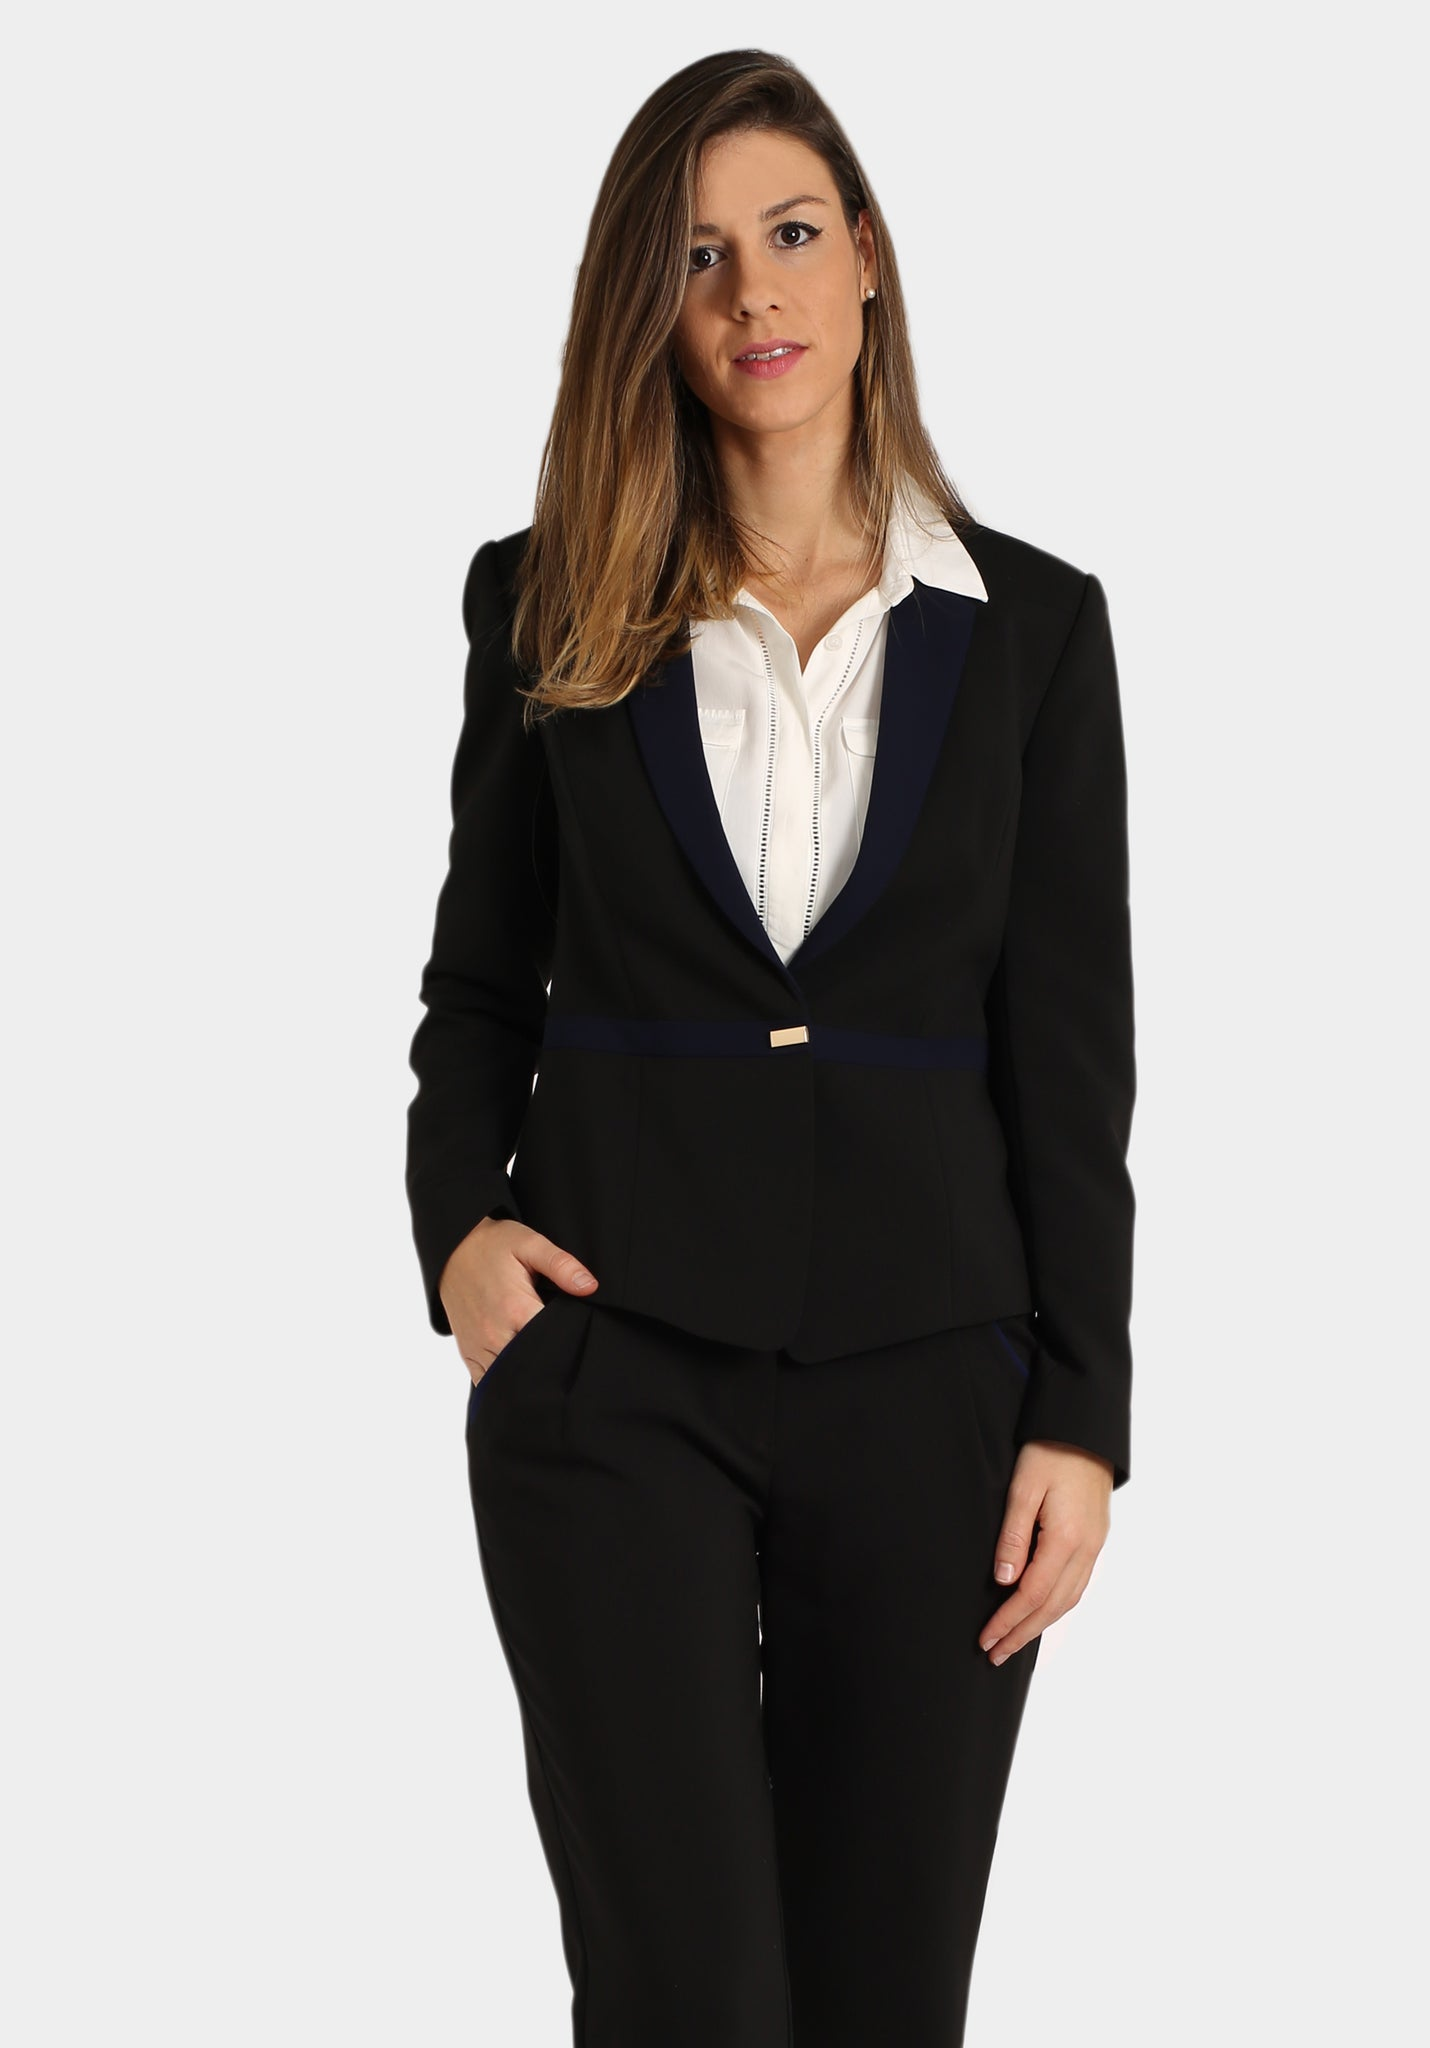 Navy & Black Blazer